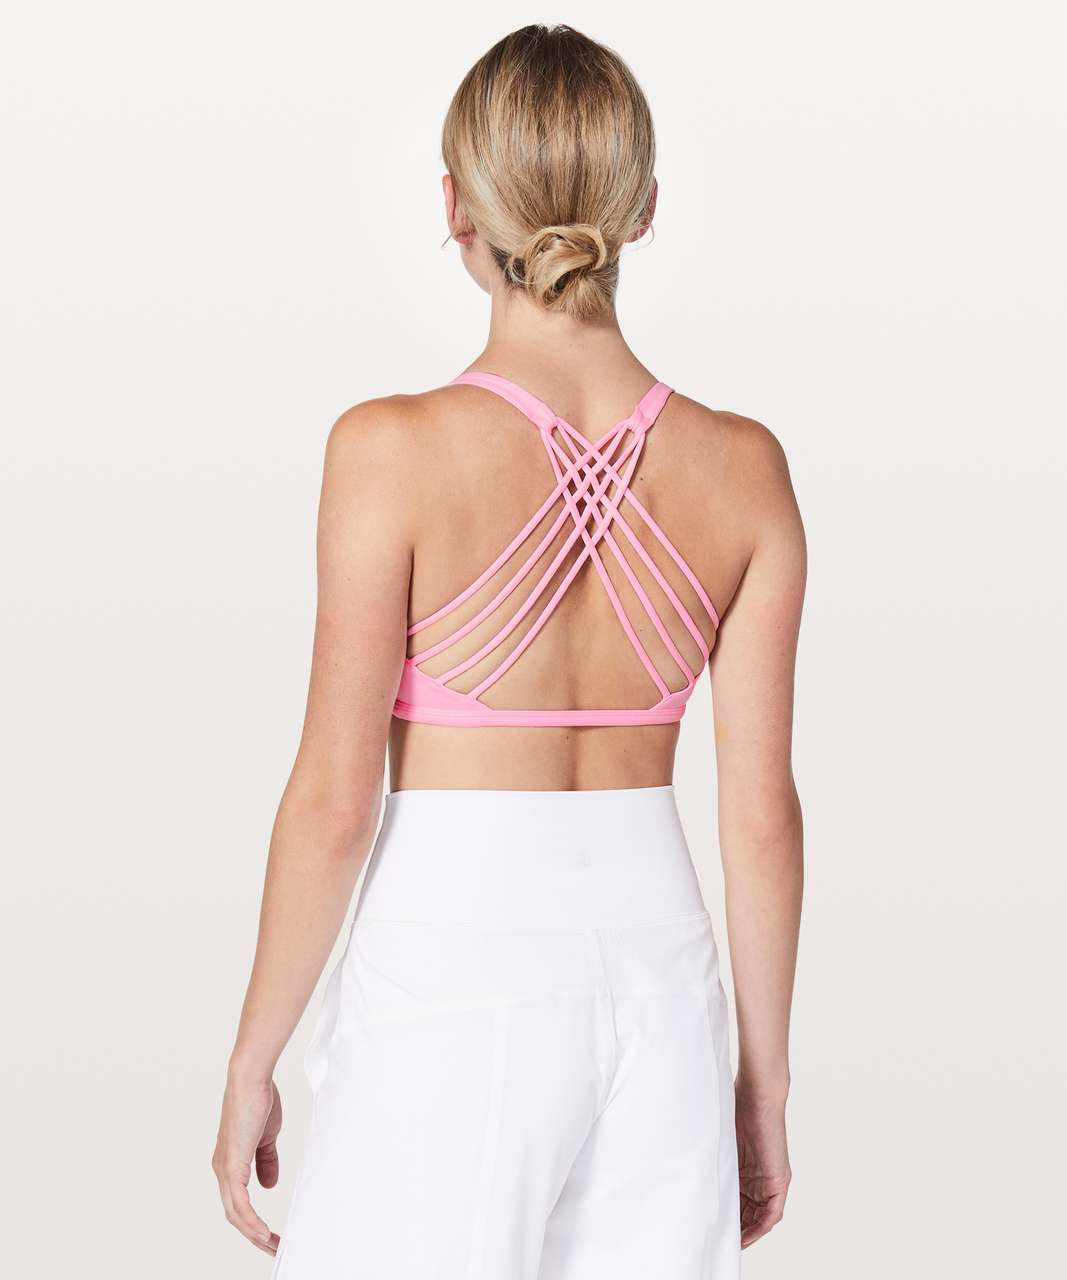 Lululemon Free To Be Bra (Wild) - Miami Pink